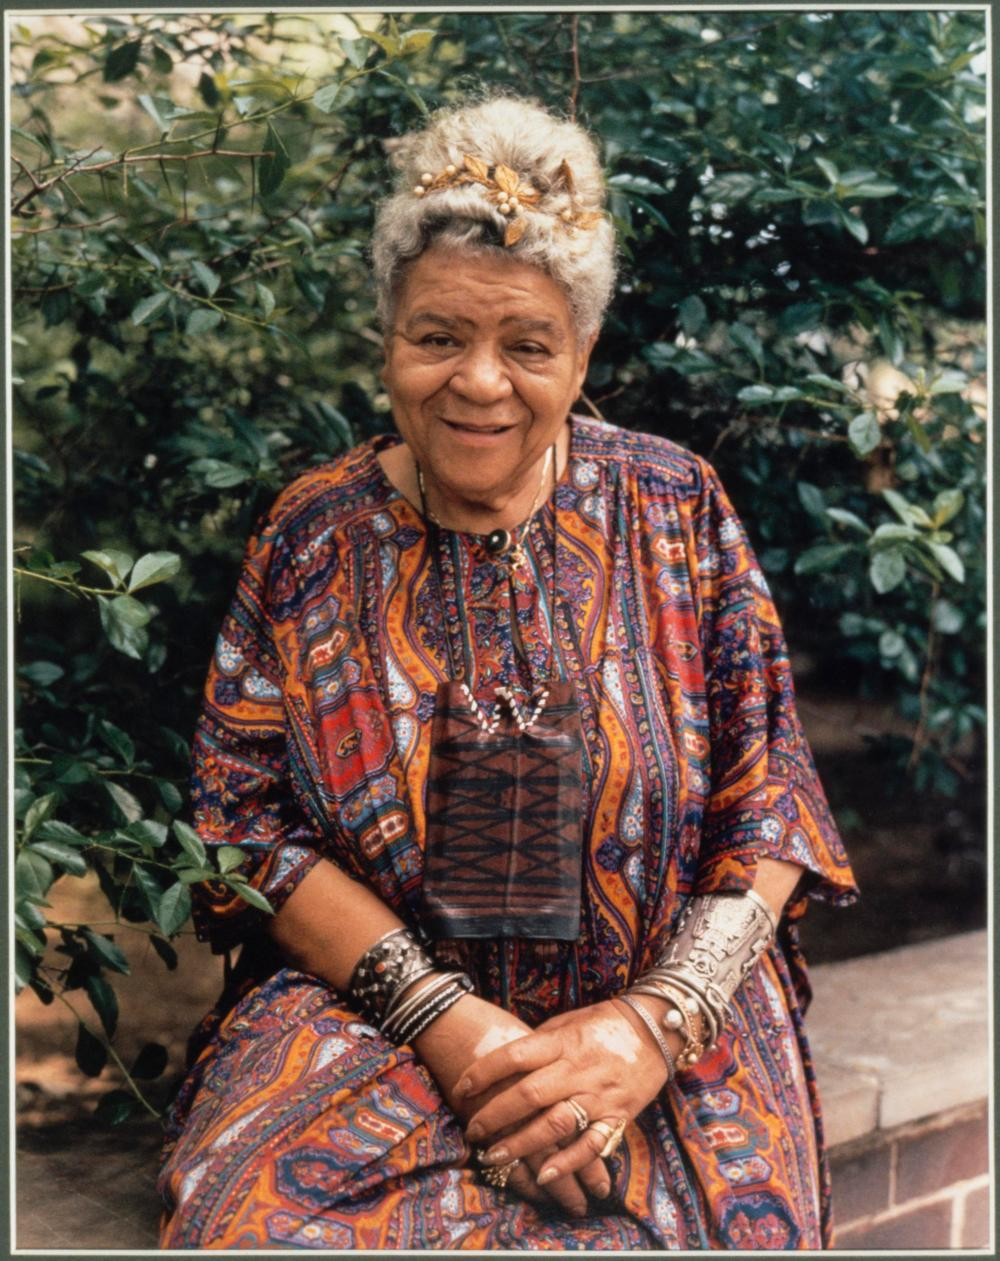 biography-_audley_moore_known_as_queen_mother_moore_for_many_years_has_been_active_in_the_struggles_of_black_people_in_the_united_states_and_africa-_she_completed_school_only_to_the_third_or_fourth_